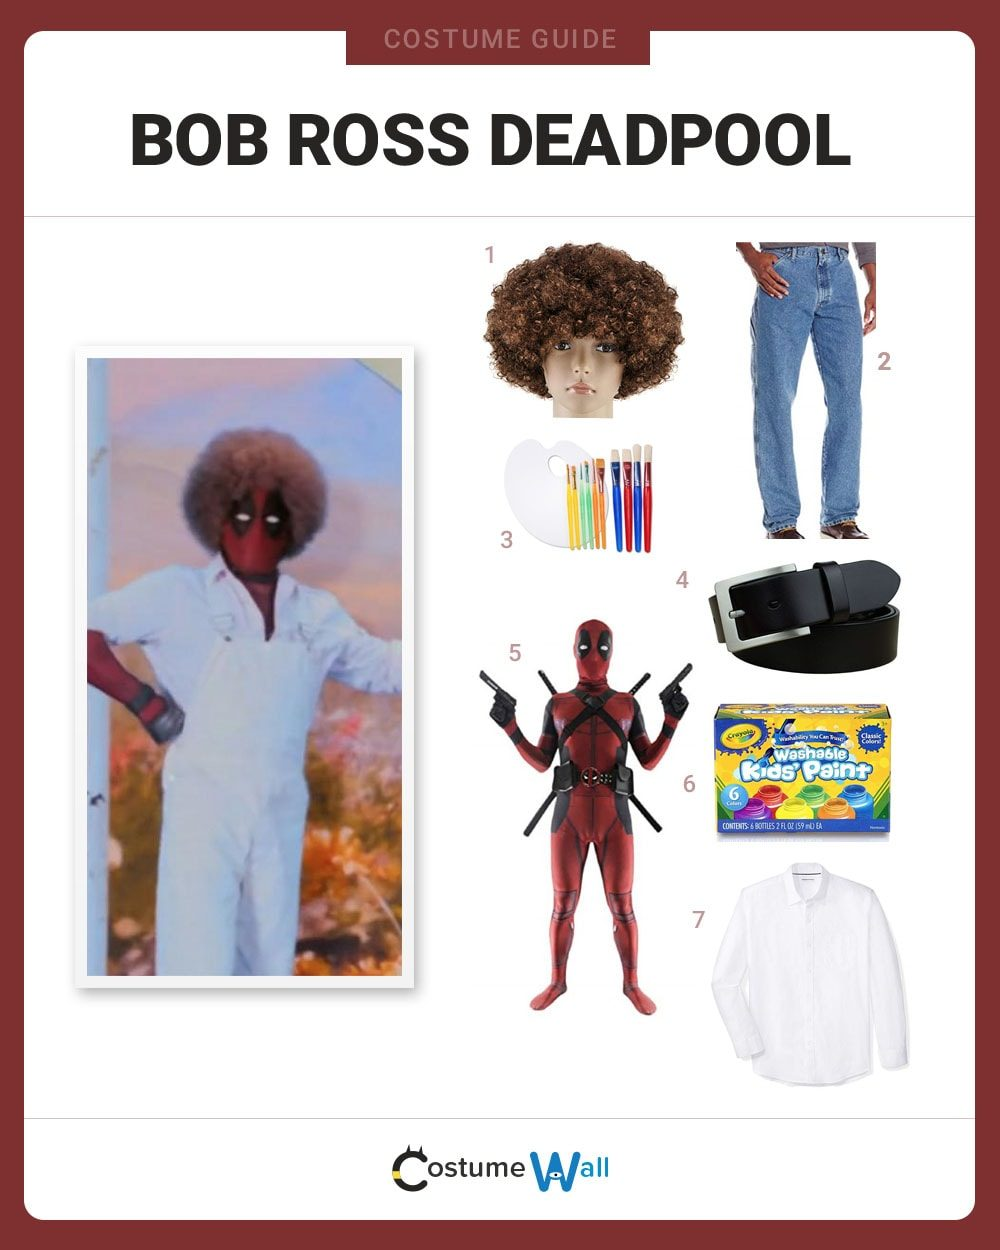 Bob Ross Deadpool Costume Guide